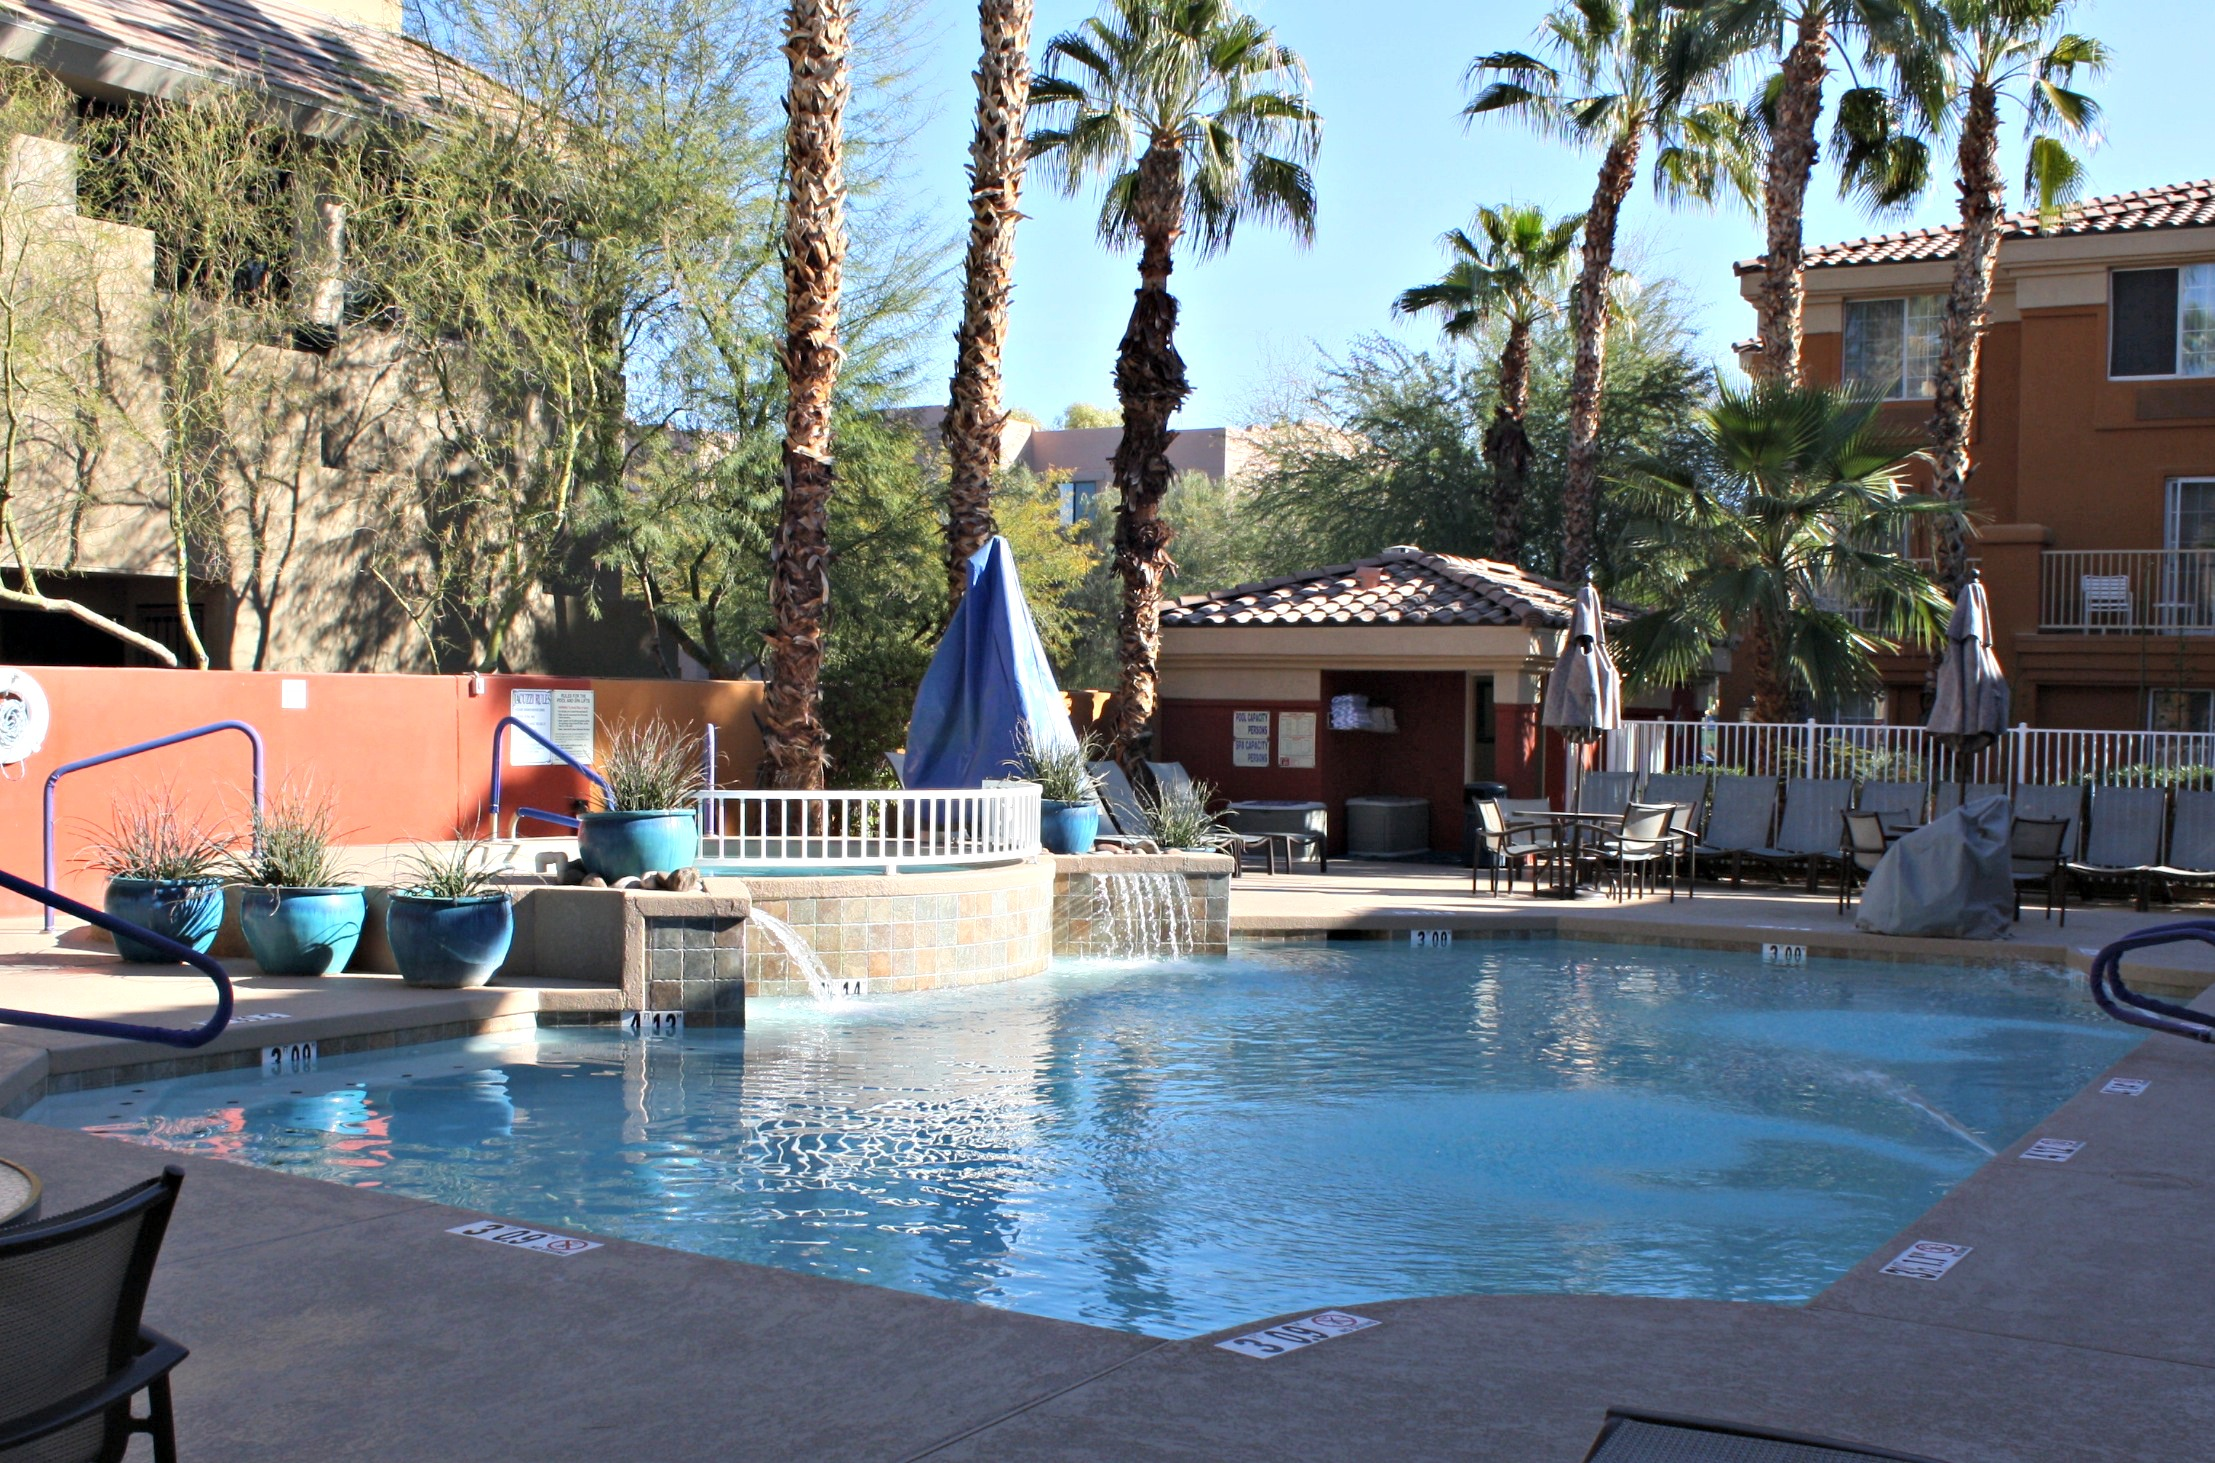 Holiday Inn Express Suites in Scottsdale, Arizona: A Great Family Value